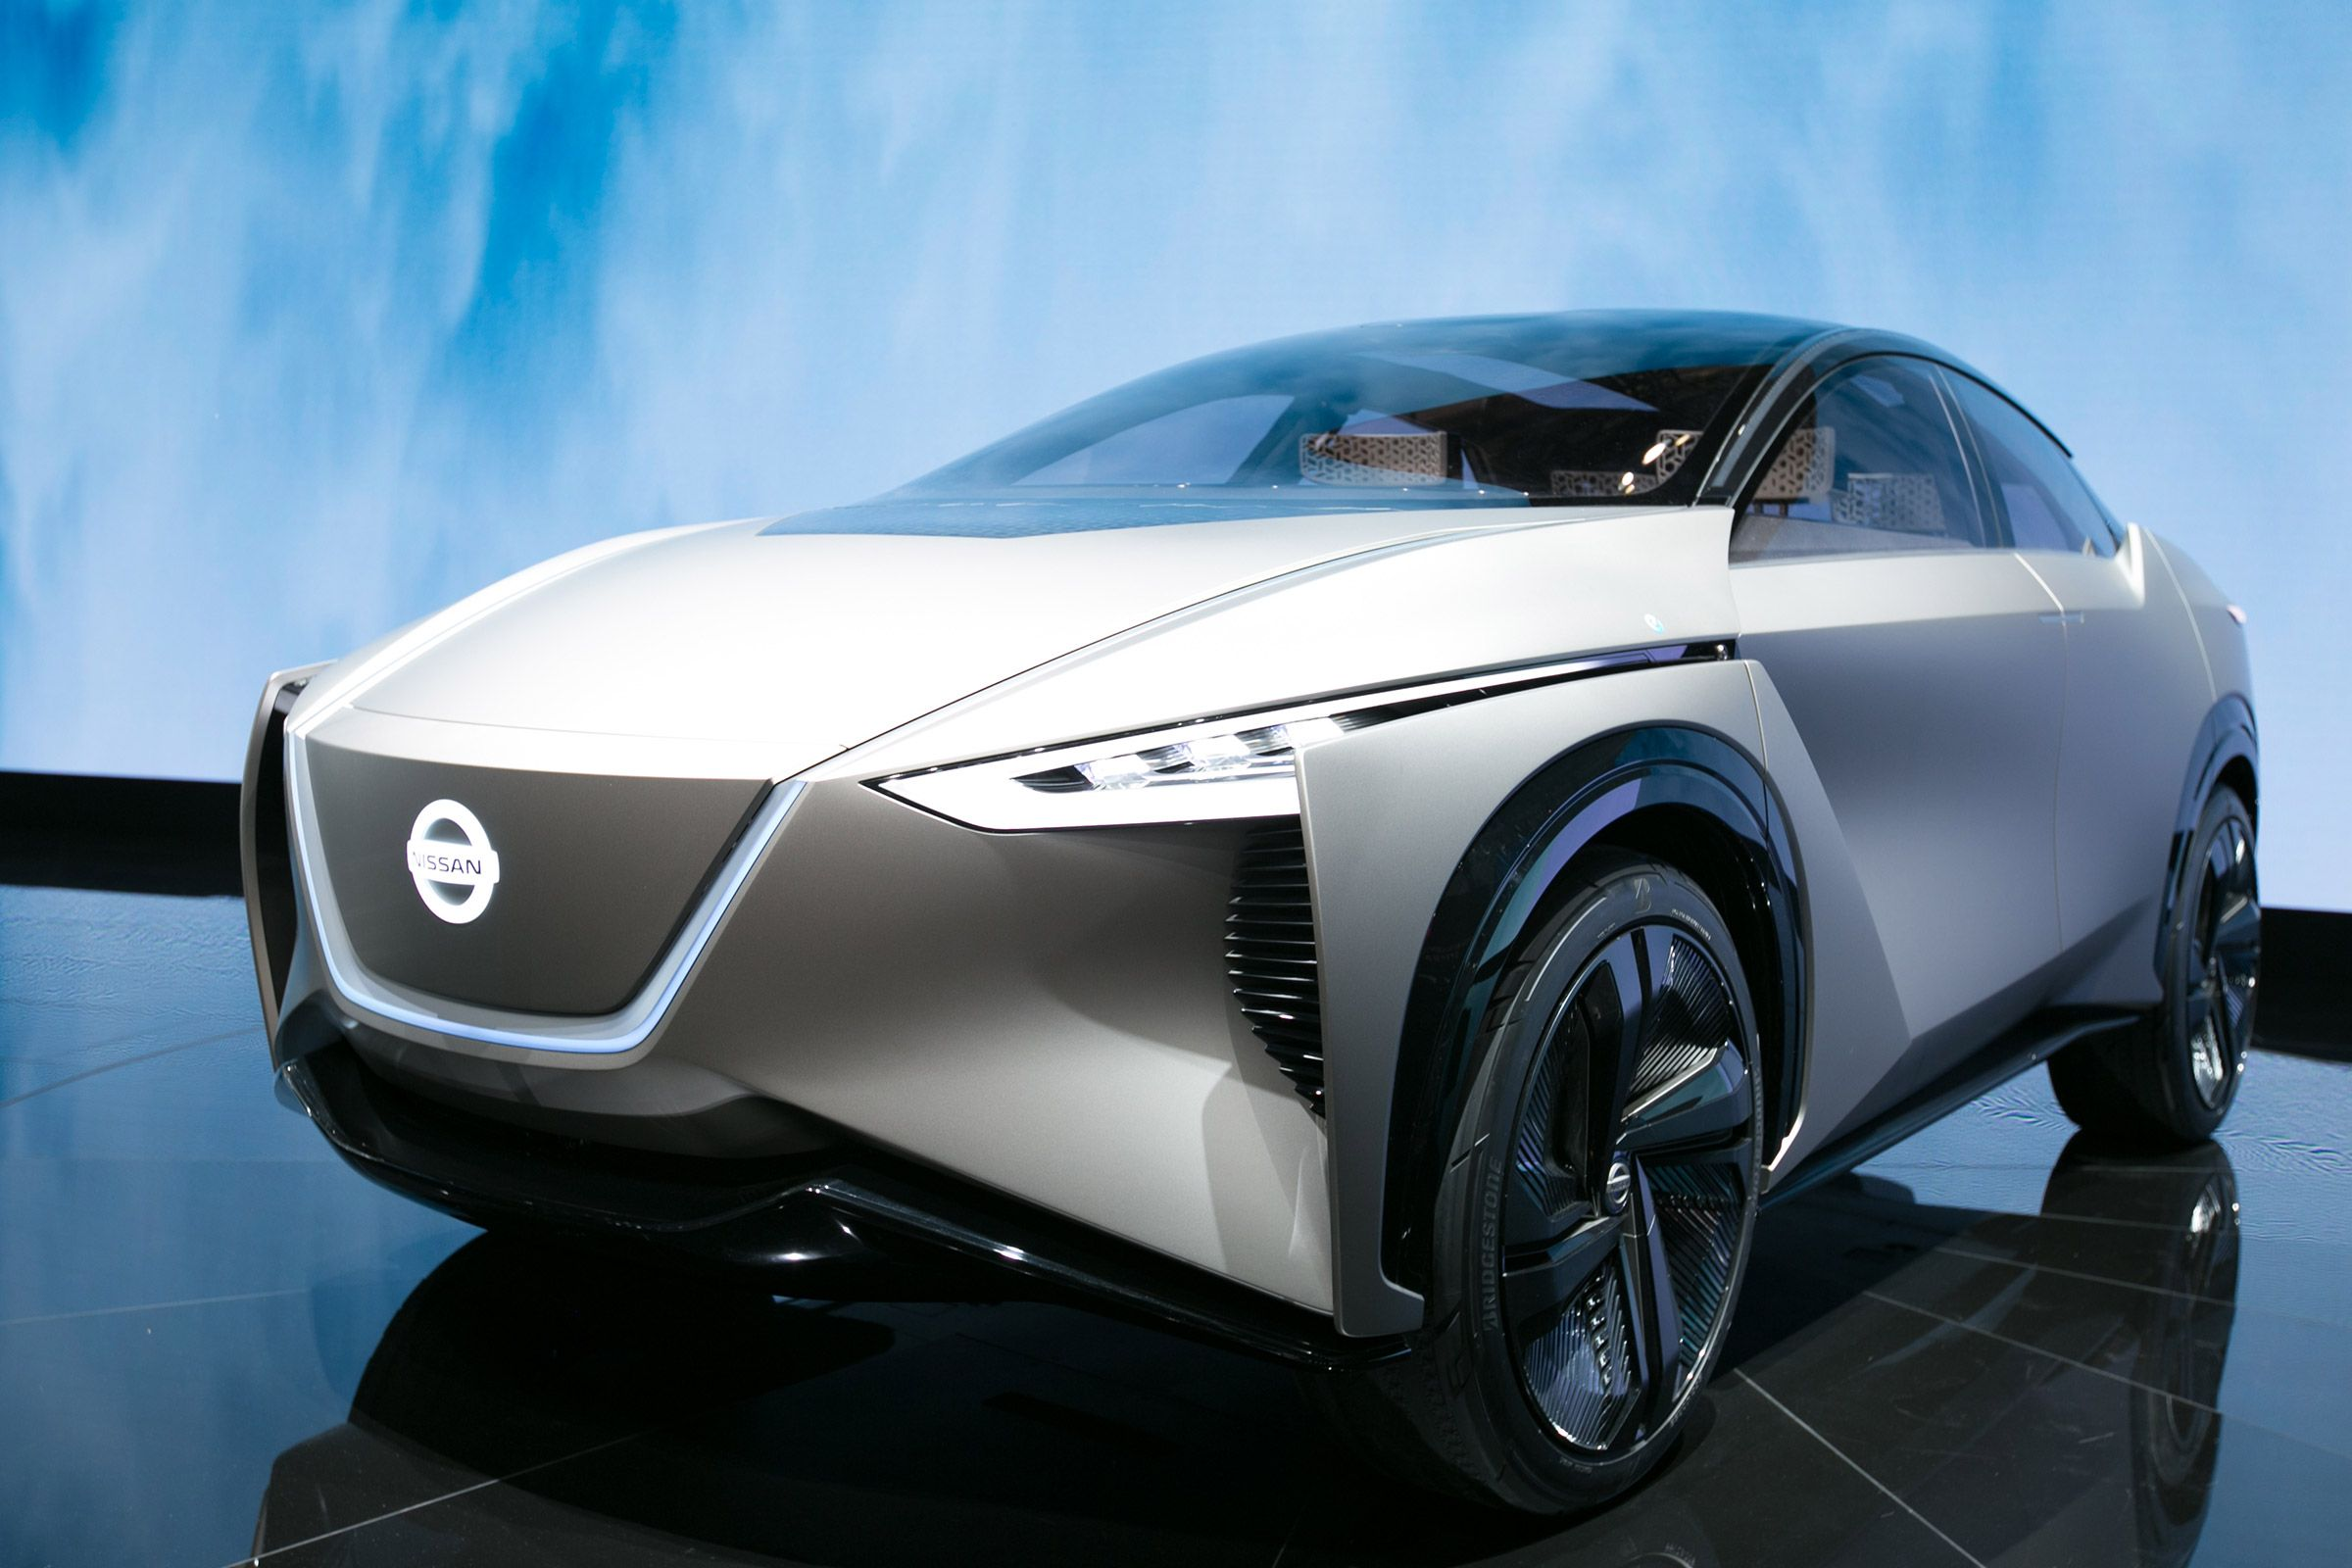 Nissan 2020 Nissan Qashqai Will Use All Electric Nissan Imx Concept 2020 Nissan Qashqai Ev Spy Design Price Nissan Qashqai Nissan Vehicles